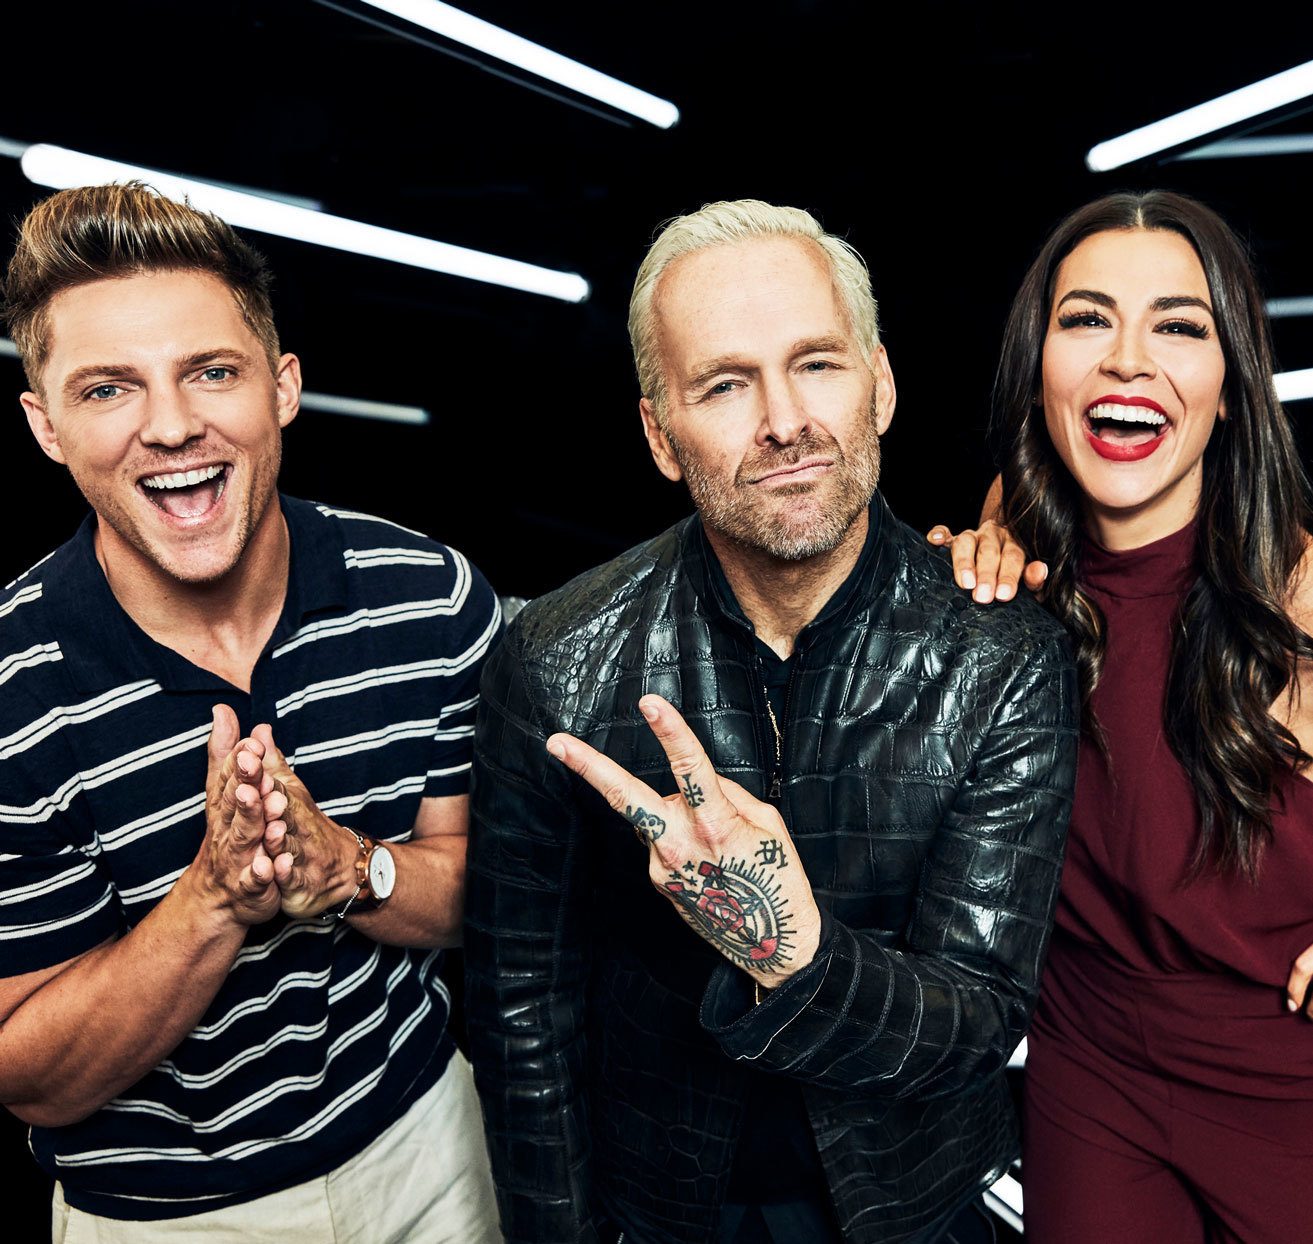 The Biggest Loser 2020 Reboot - stars of the show